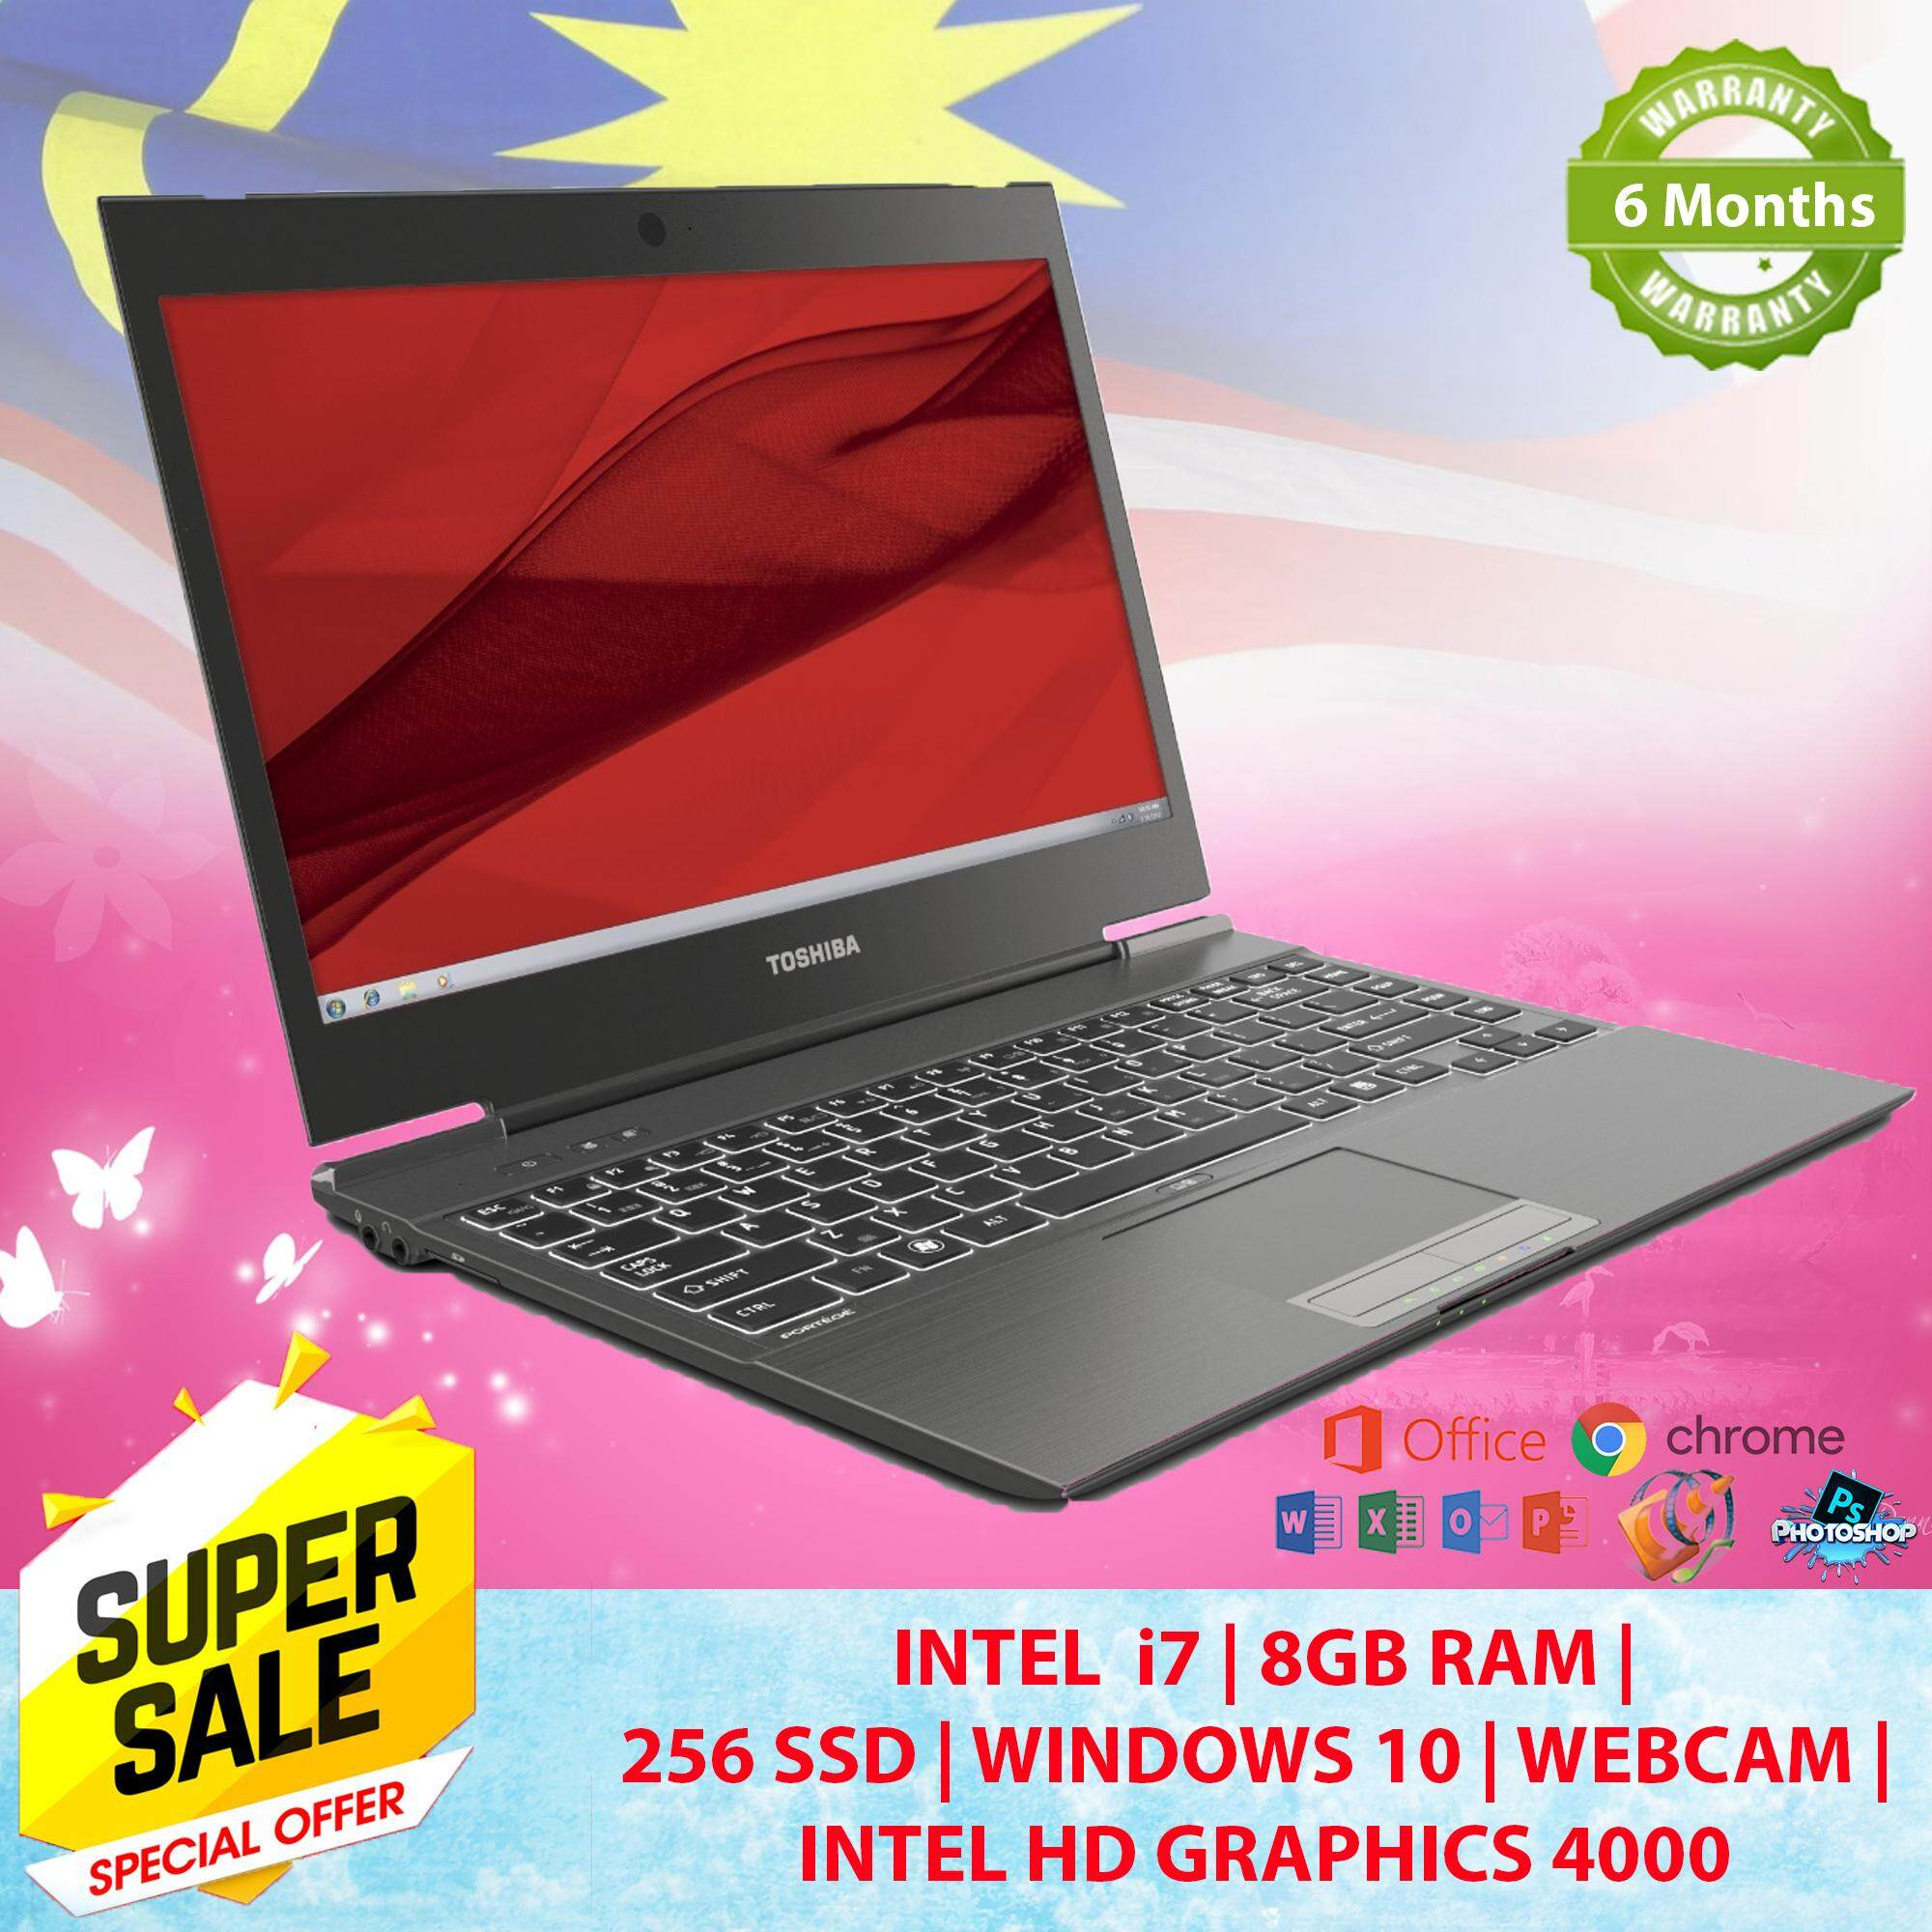 Toshiba Slim Laptop Portege Z930- CORE I7  Laptop 8GB RAM 256GB SSD Webcam , 6 Months Warranty 100% Original Free 16GB Pendrive + Bag Malaysia